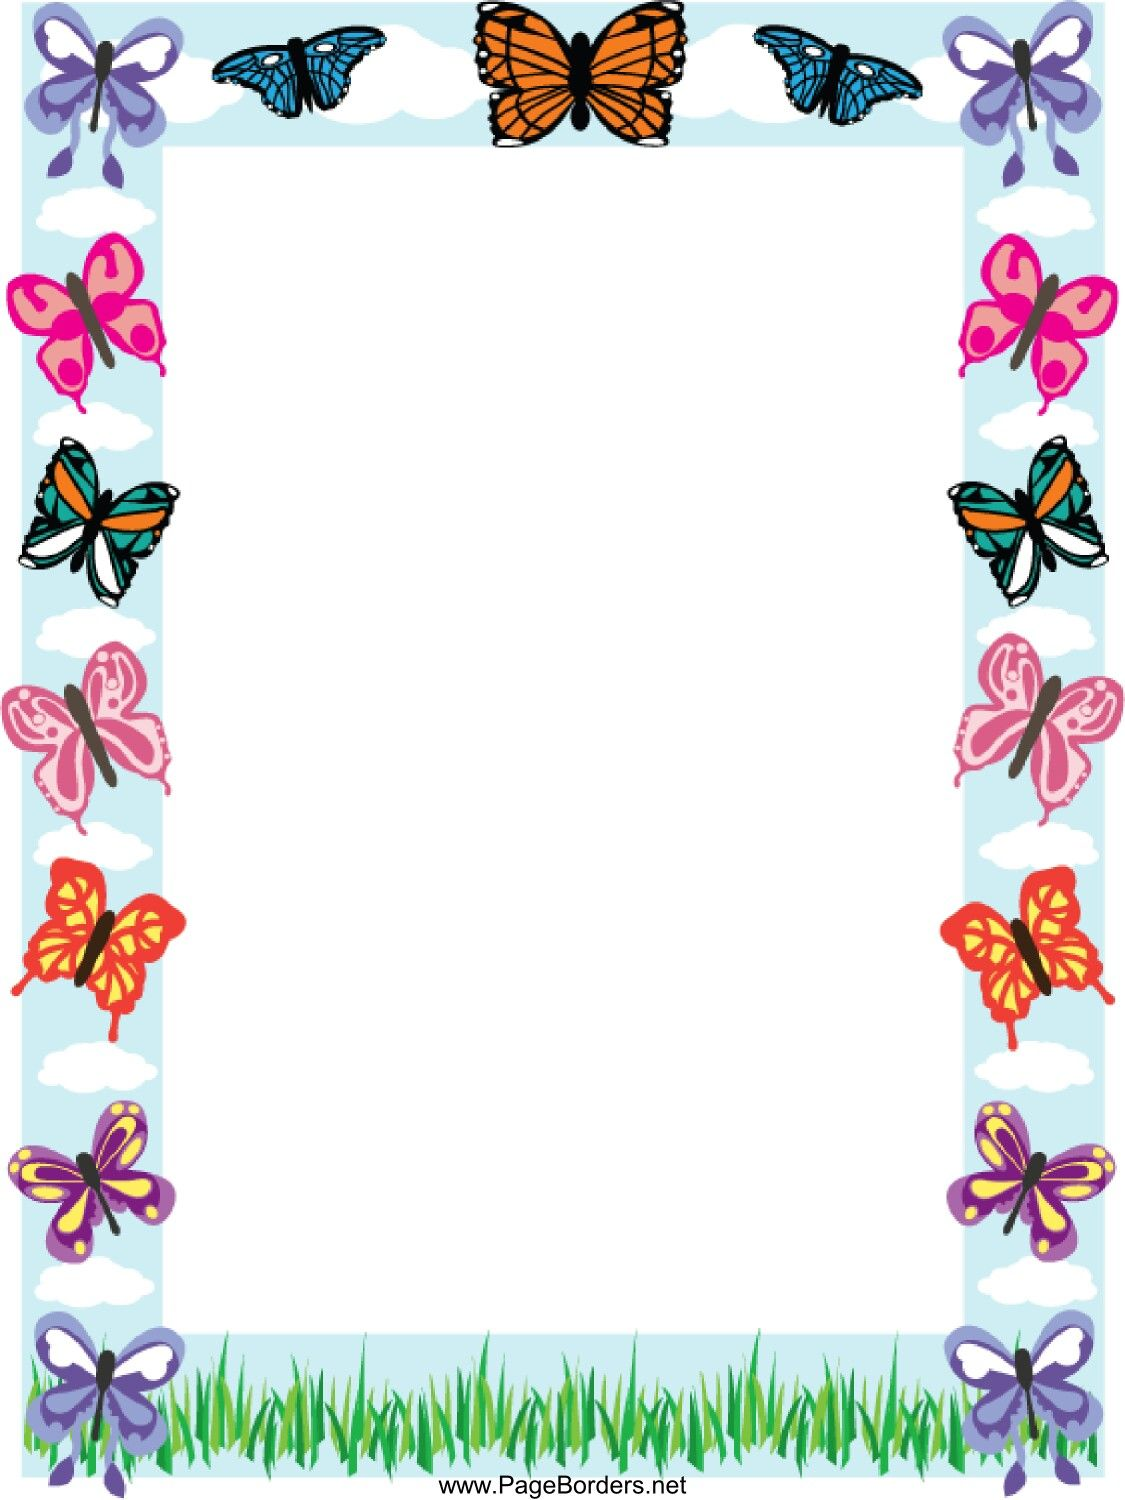 Mariposas | QUADROS BASE PARA ESCRITA | Pinterest | Mariposas ...